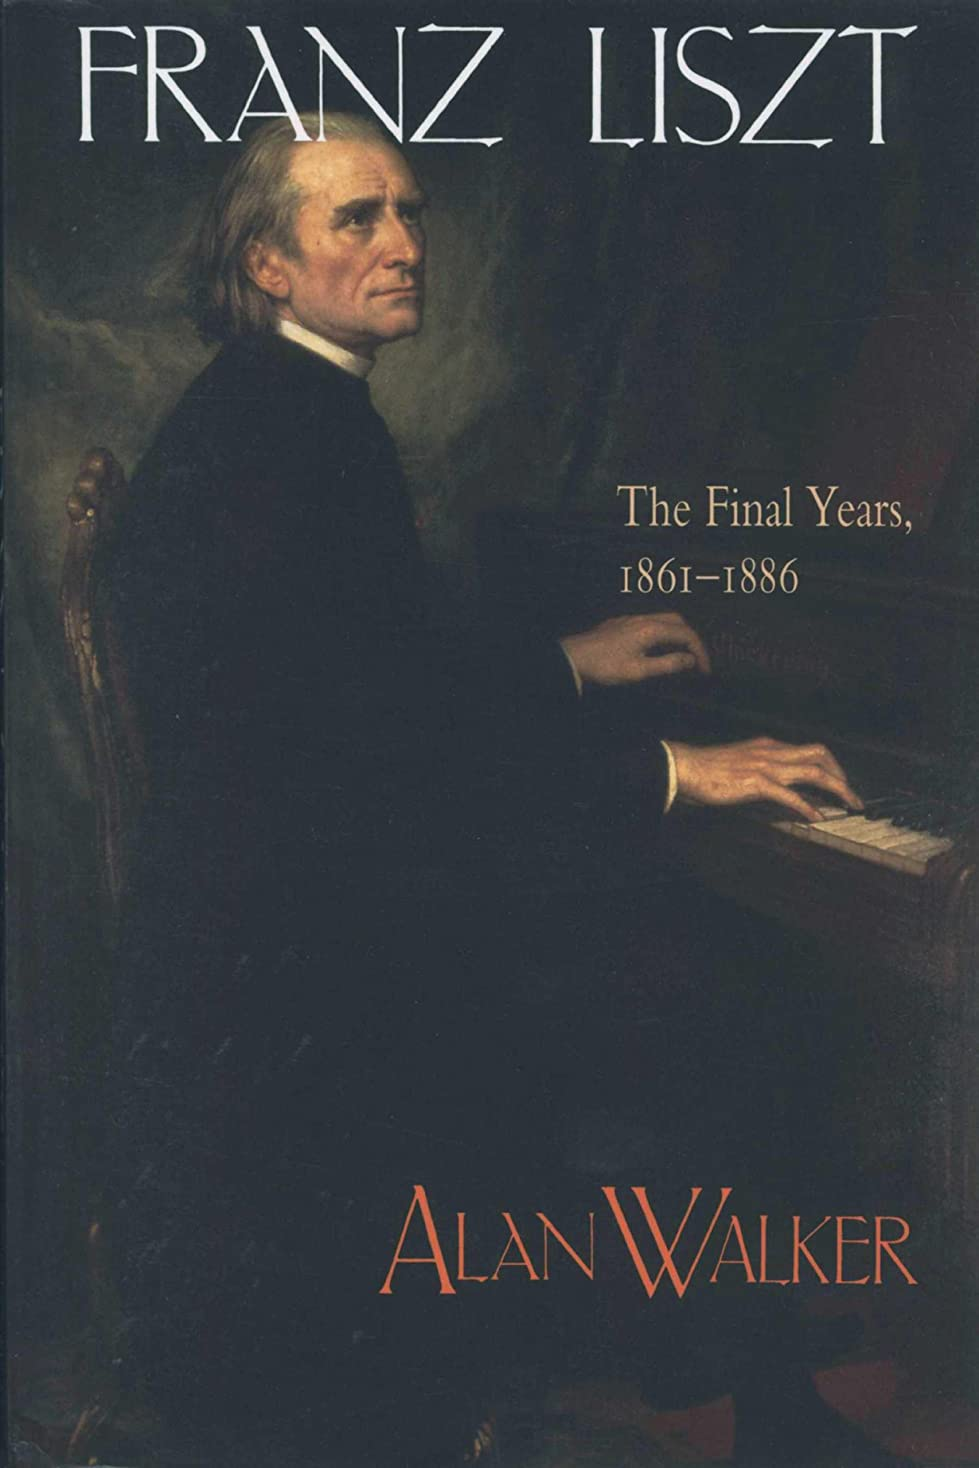 おめでとう準備する猫背Franz Liszt, Volume 3: The Final Years: 1861-1886 (English Edition)